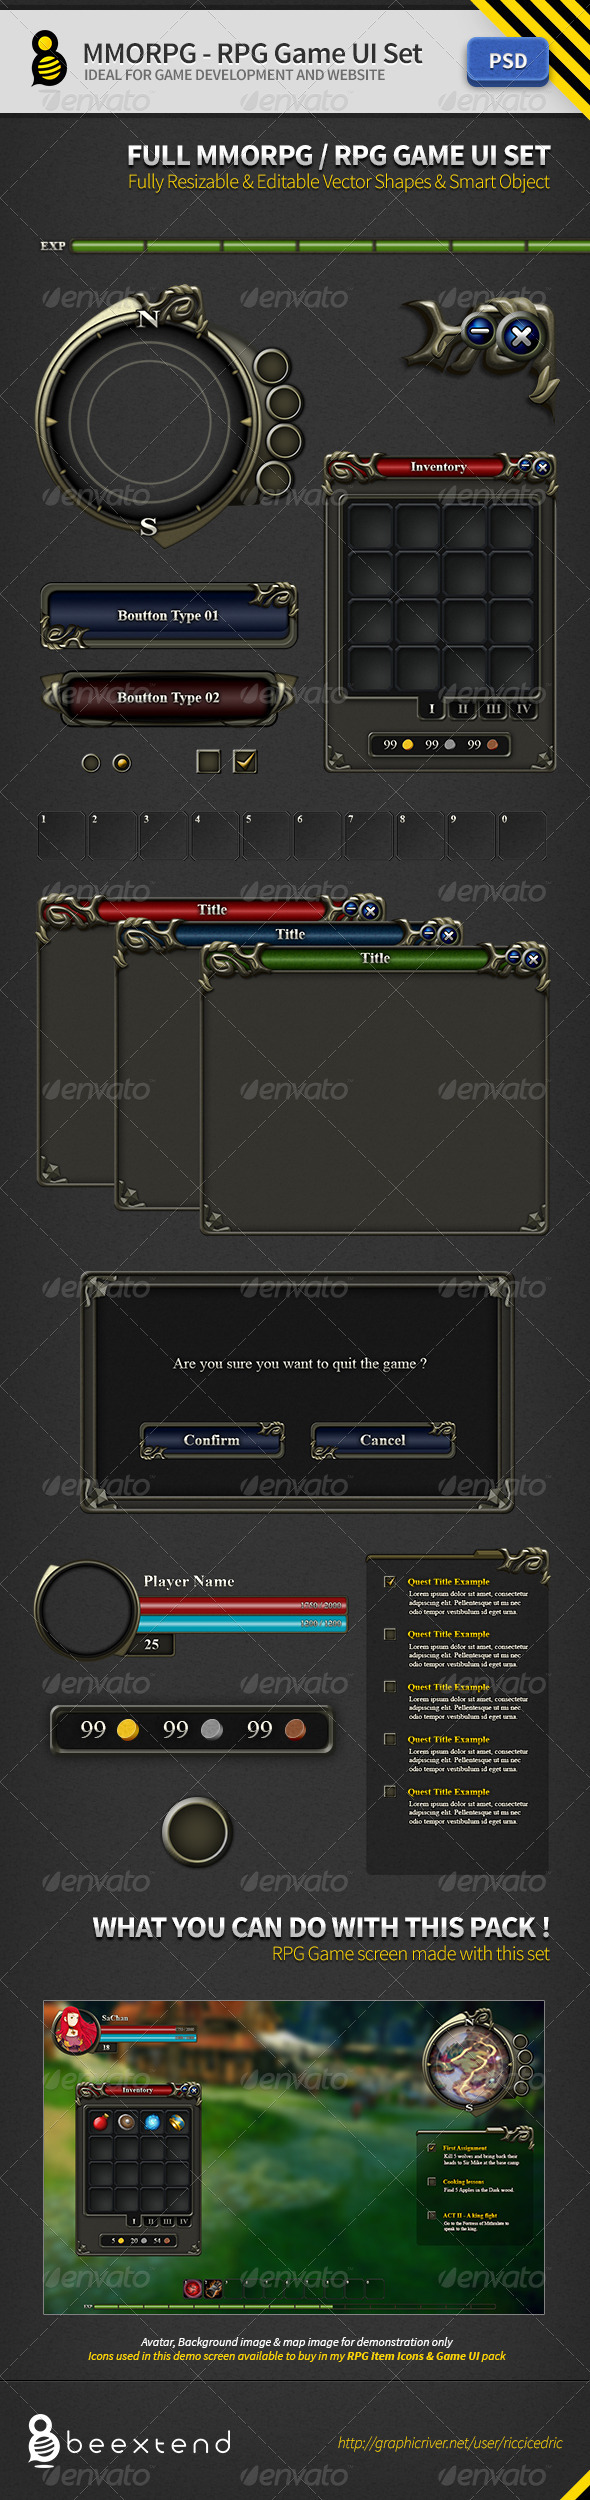 GraphicRiver MMORPG-RPG Game UI Set 2826744